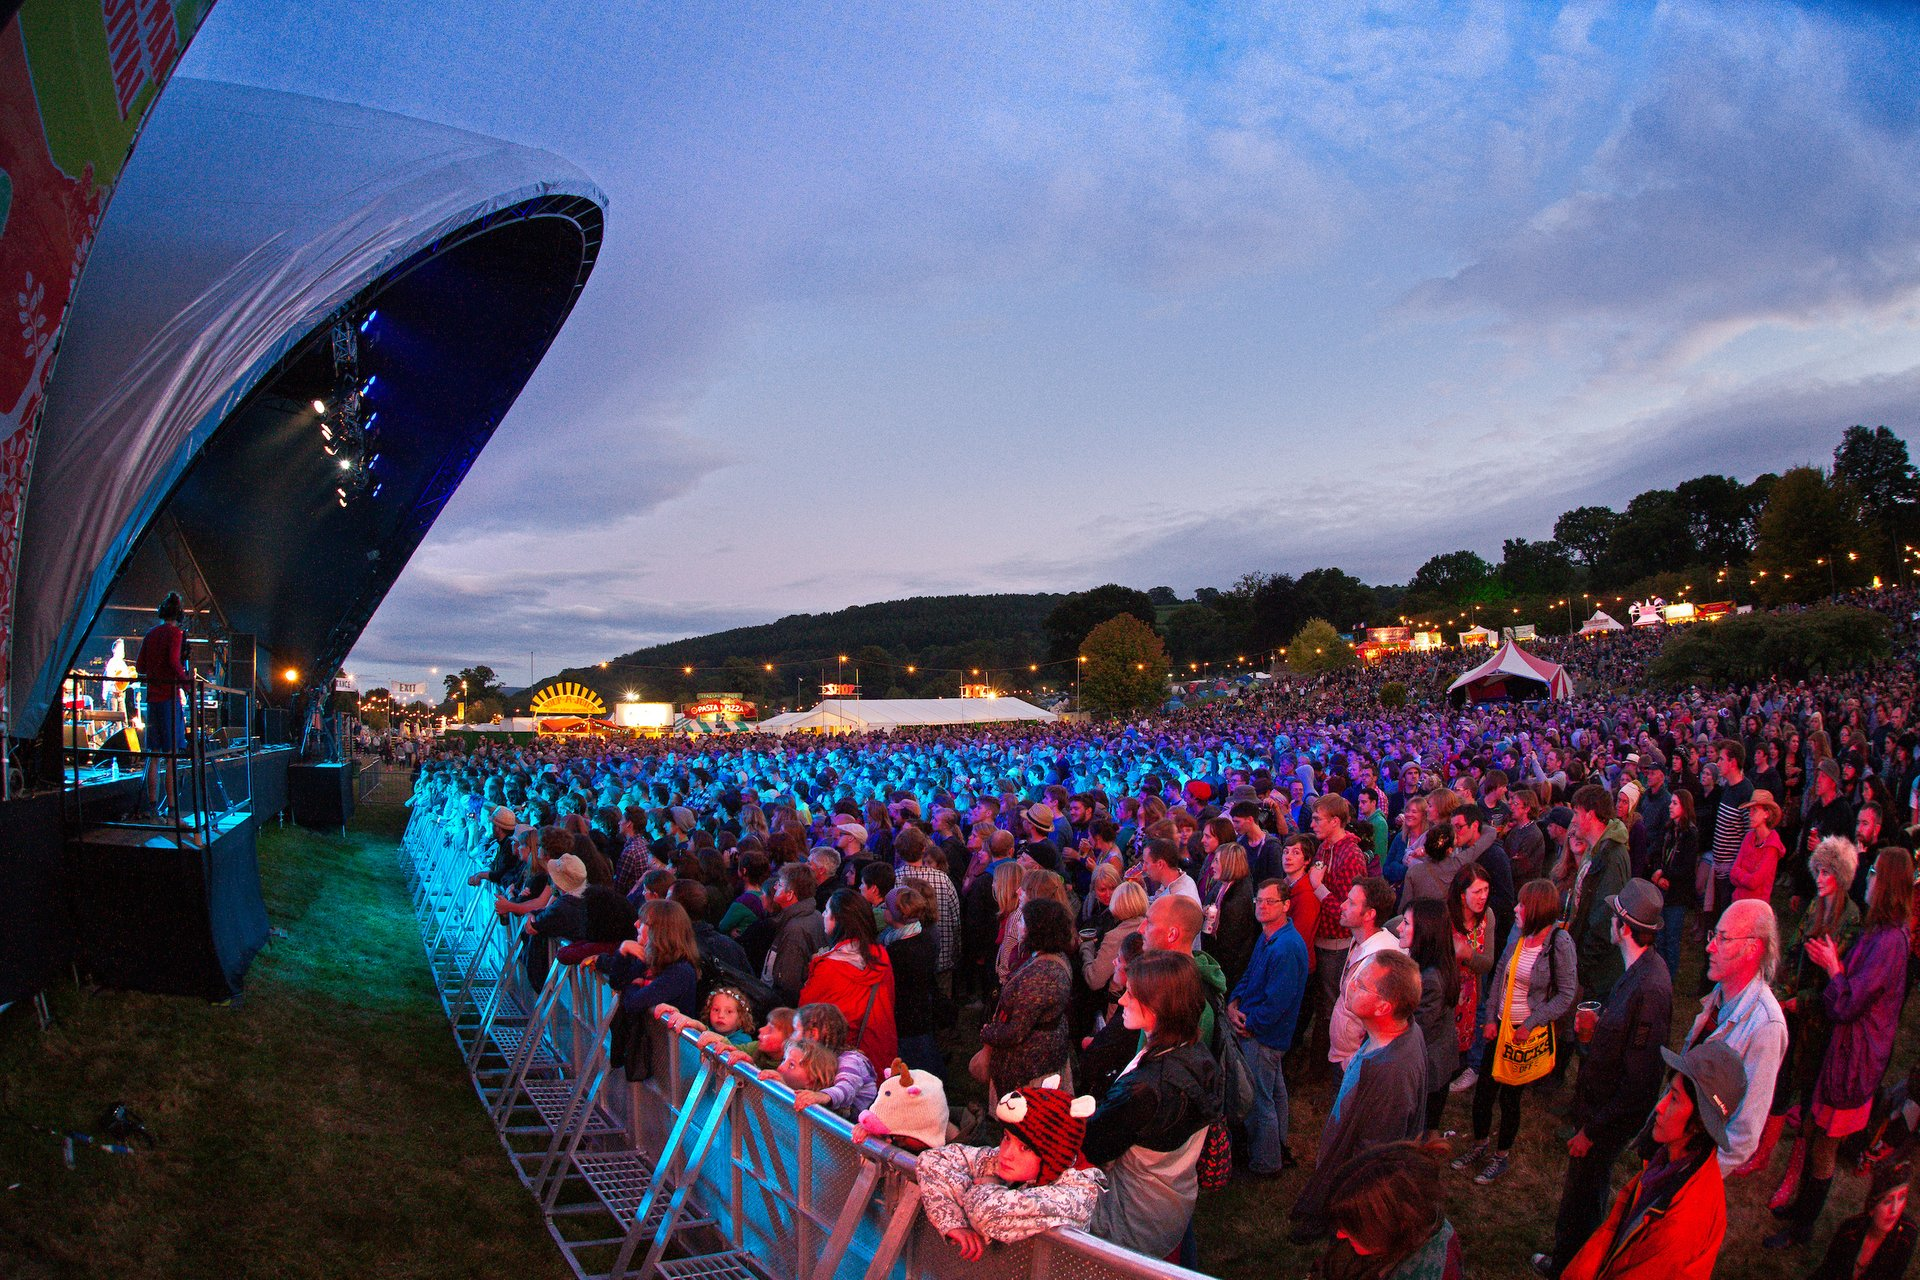 Green Man Festival in Wales 2020 - Best Time